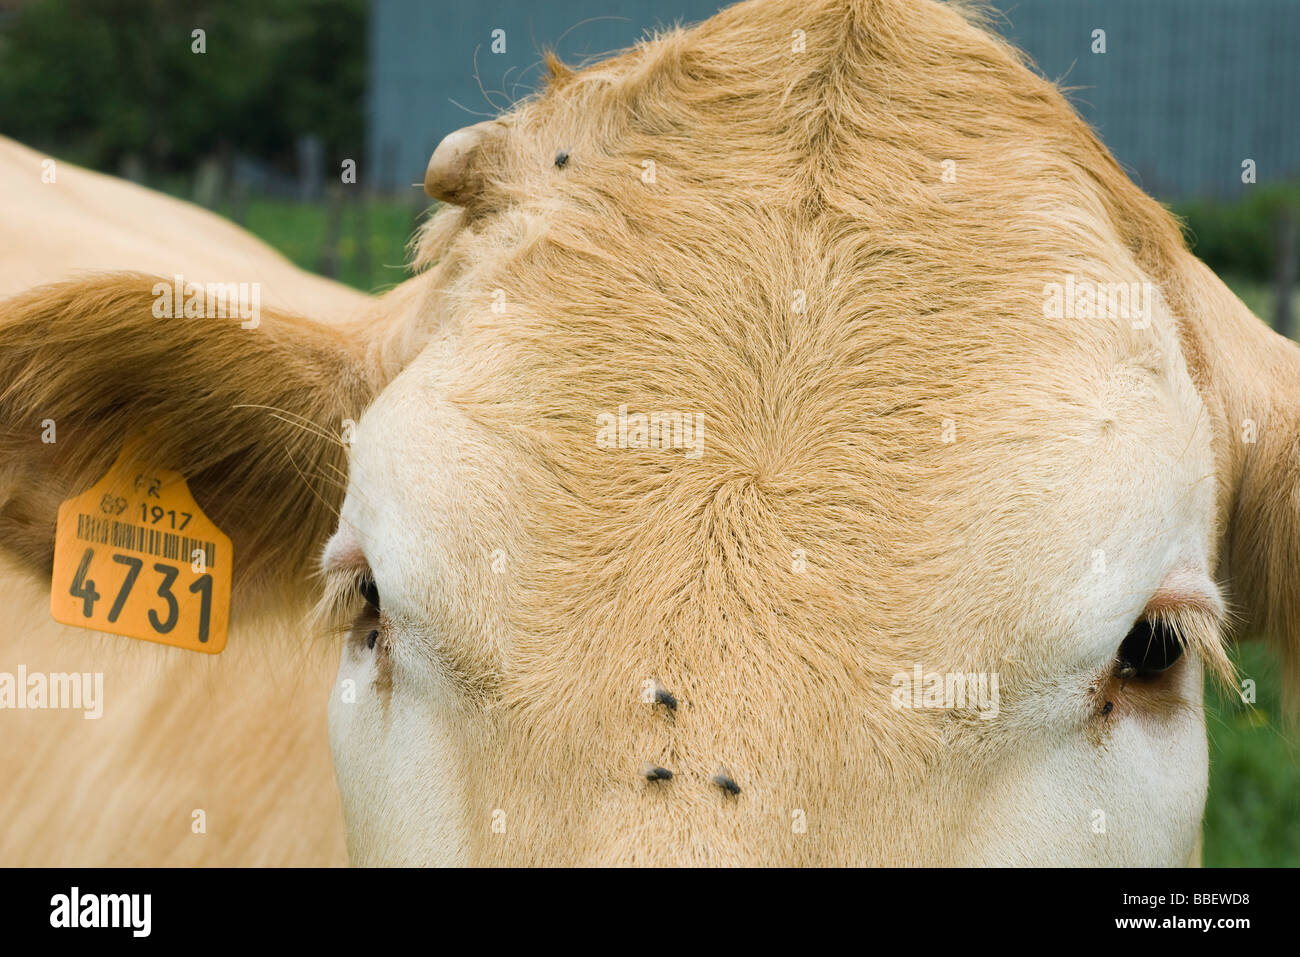 Cow with ear tag, extreme close-up - Stock Image